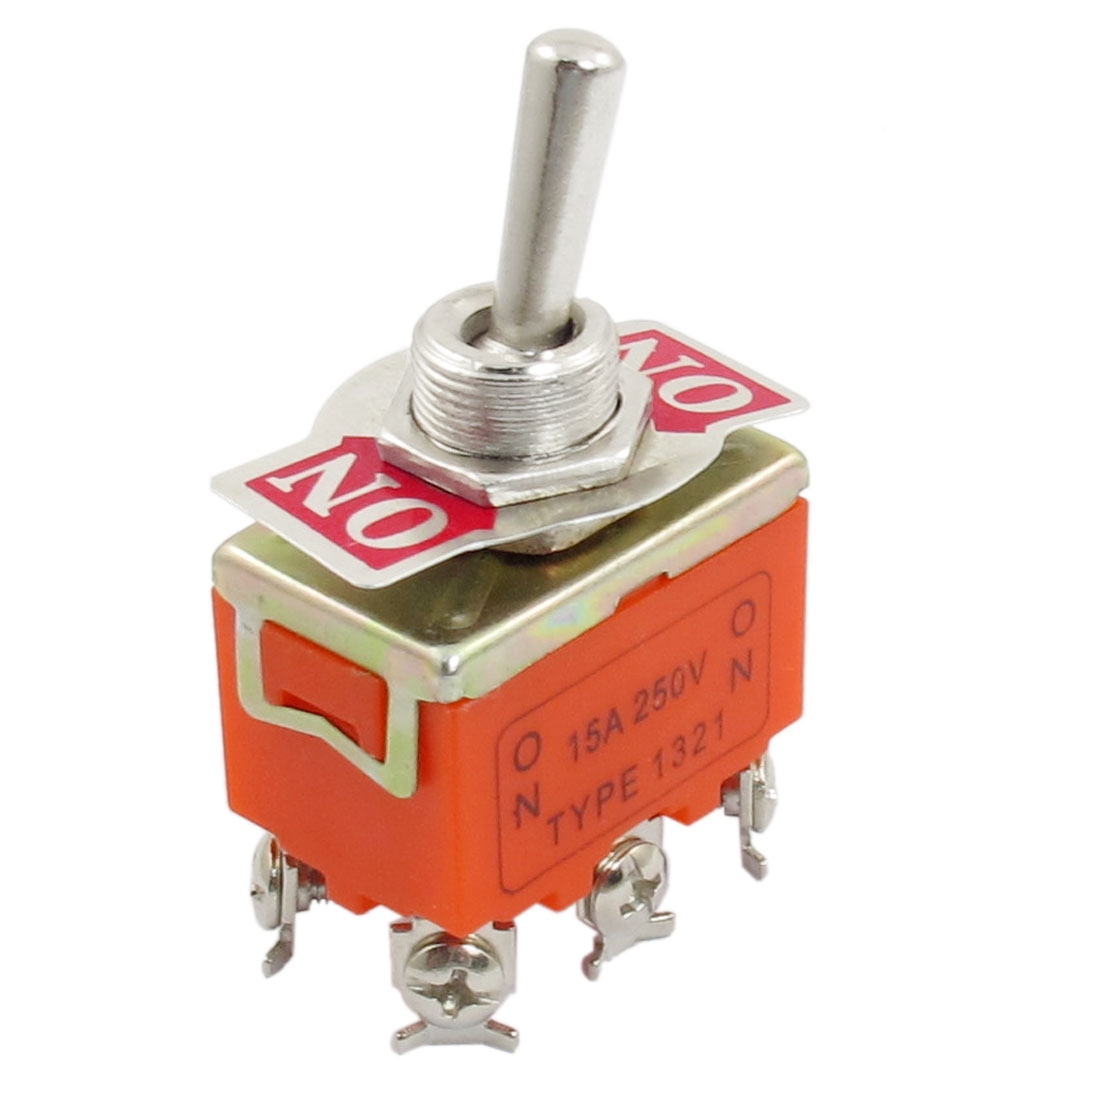 DPDT 6 Screw Terminals ON/ON 2 Position Toggle Switch AC 250V 15A